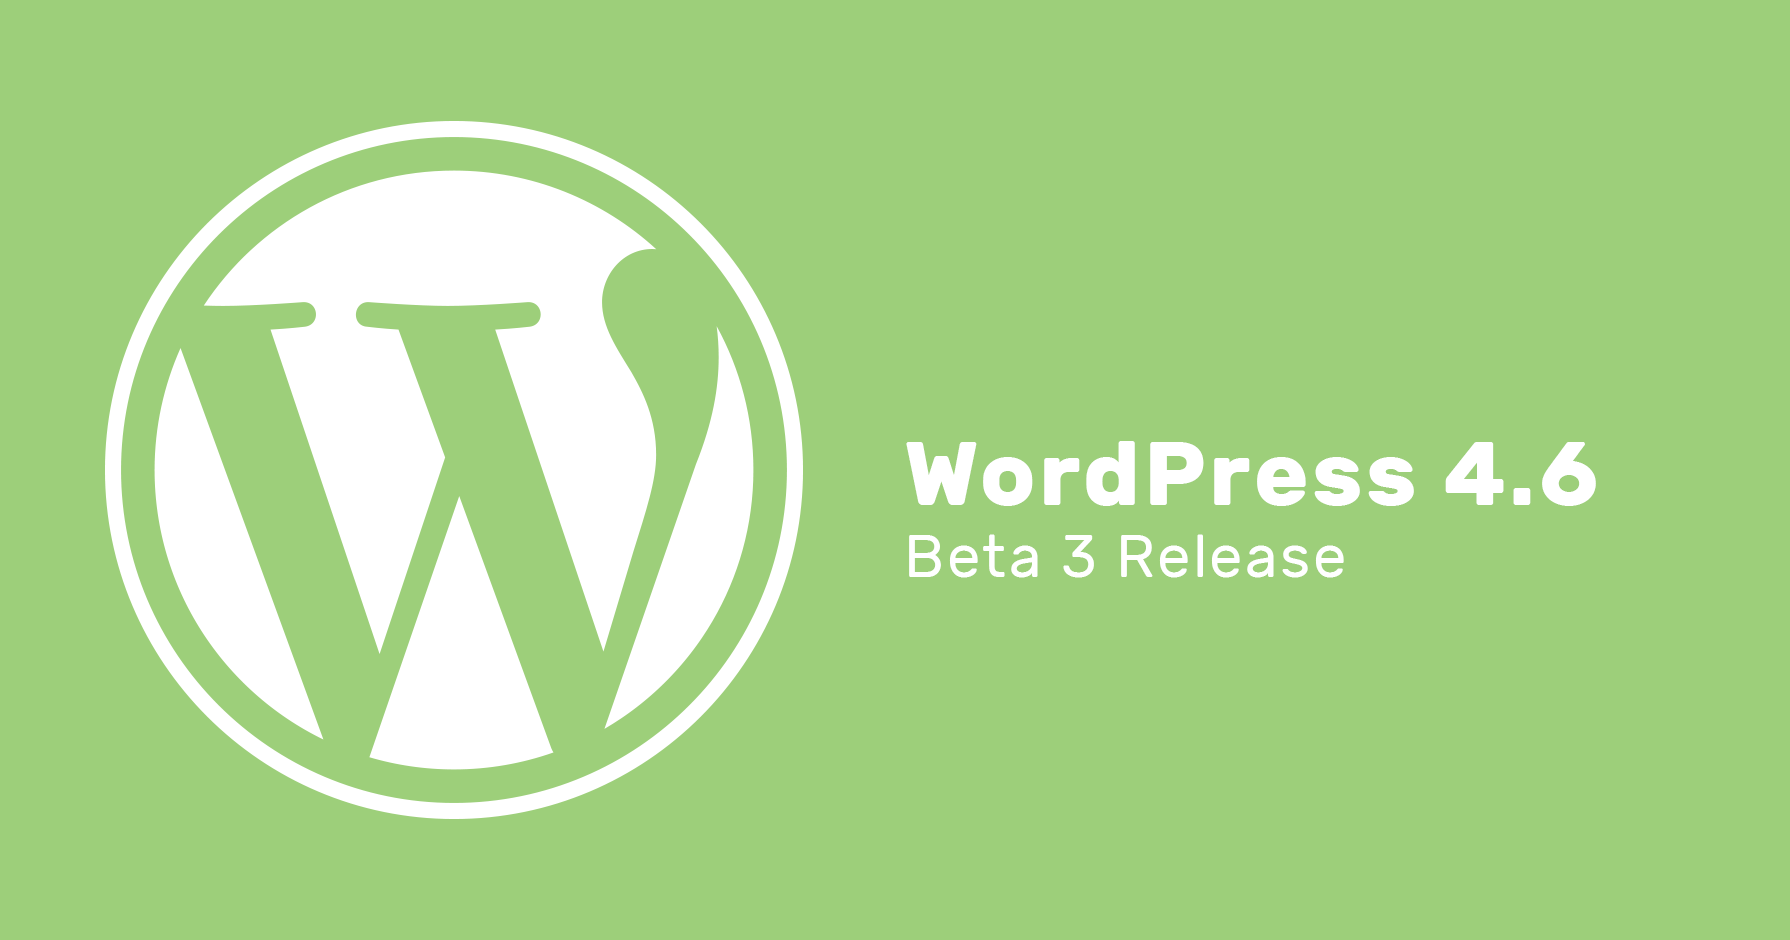 WordPress 4.6 Beta 3 is now available!